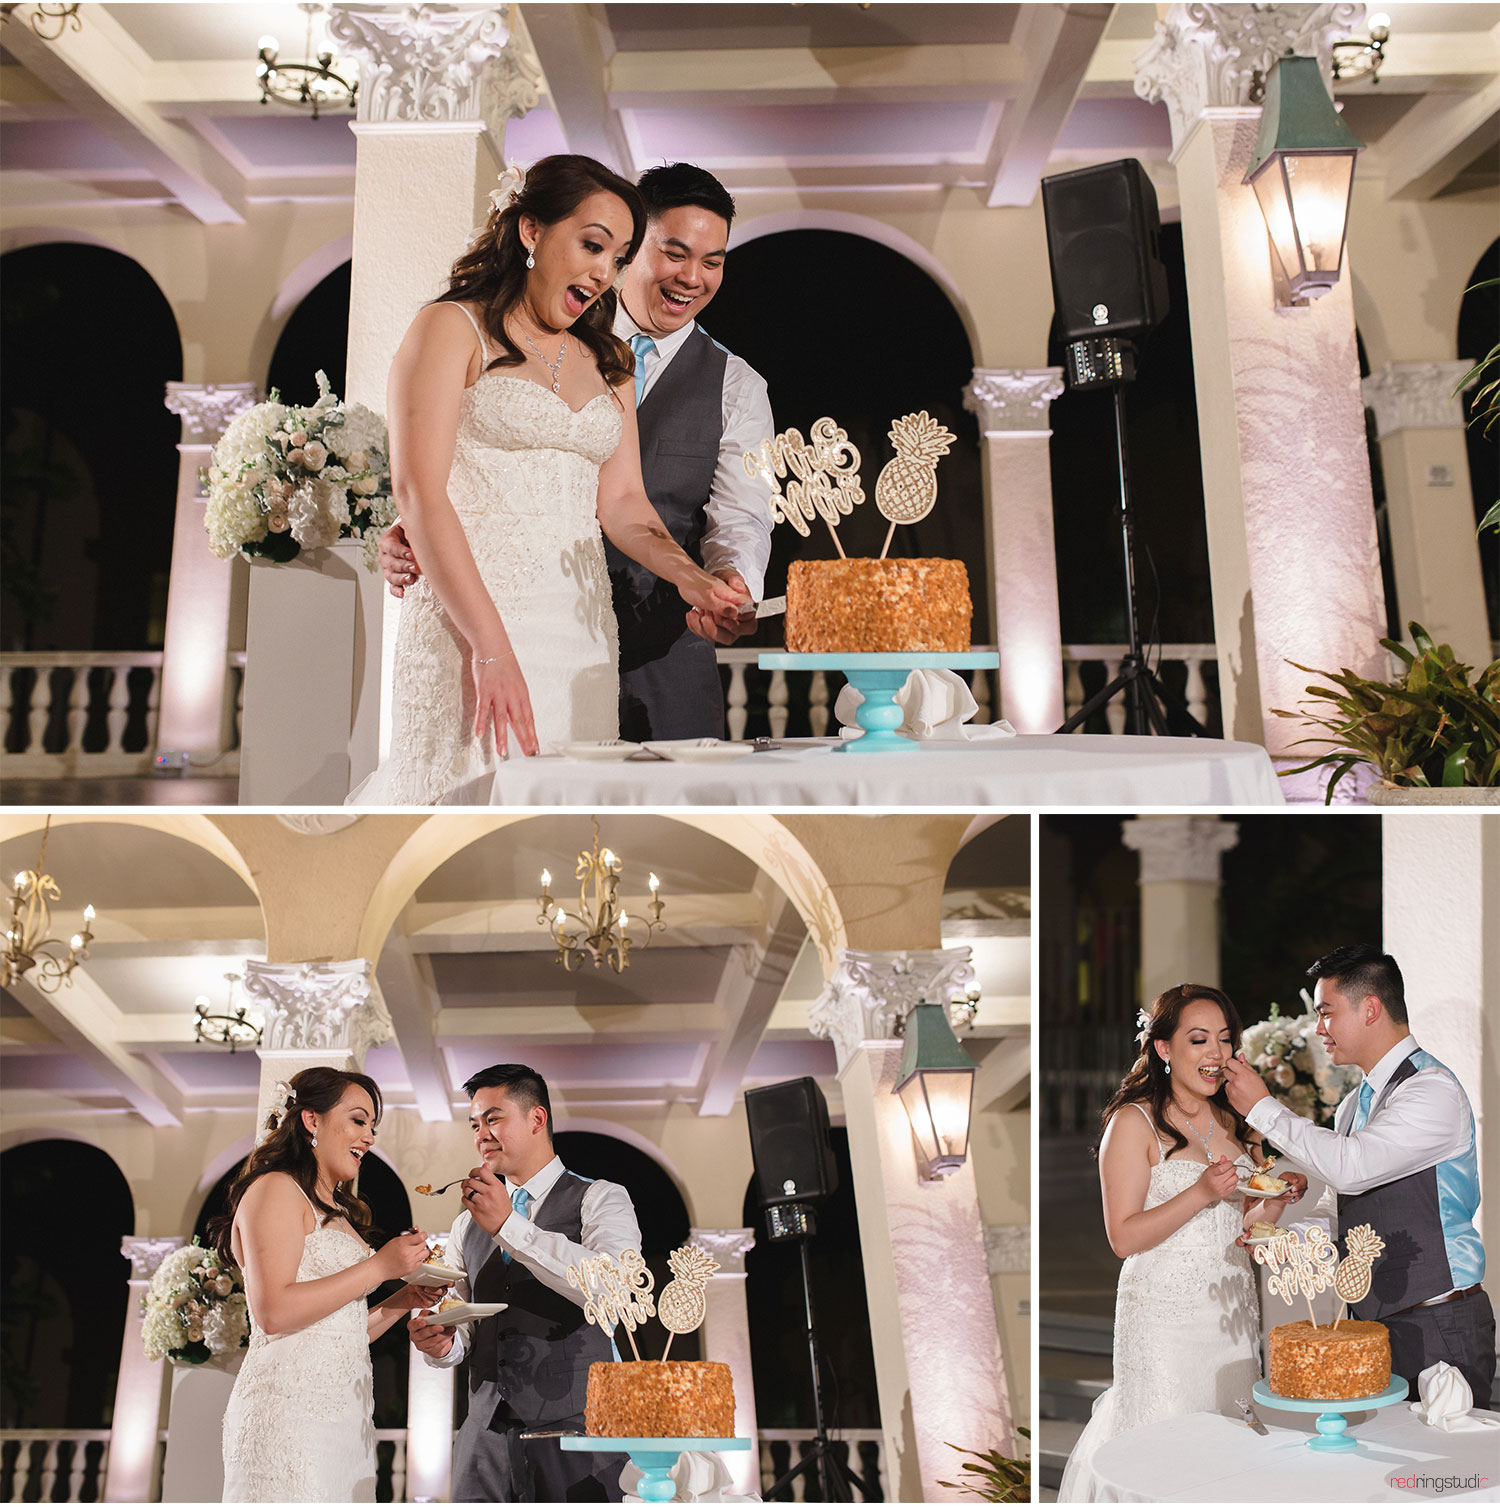 Alyssa_+_Patrick_25.Reception-Cake-Cut.Cafe-Julia.jpg